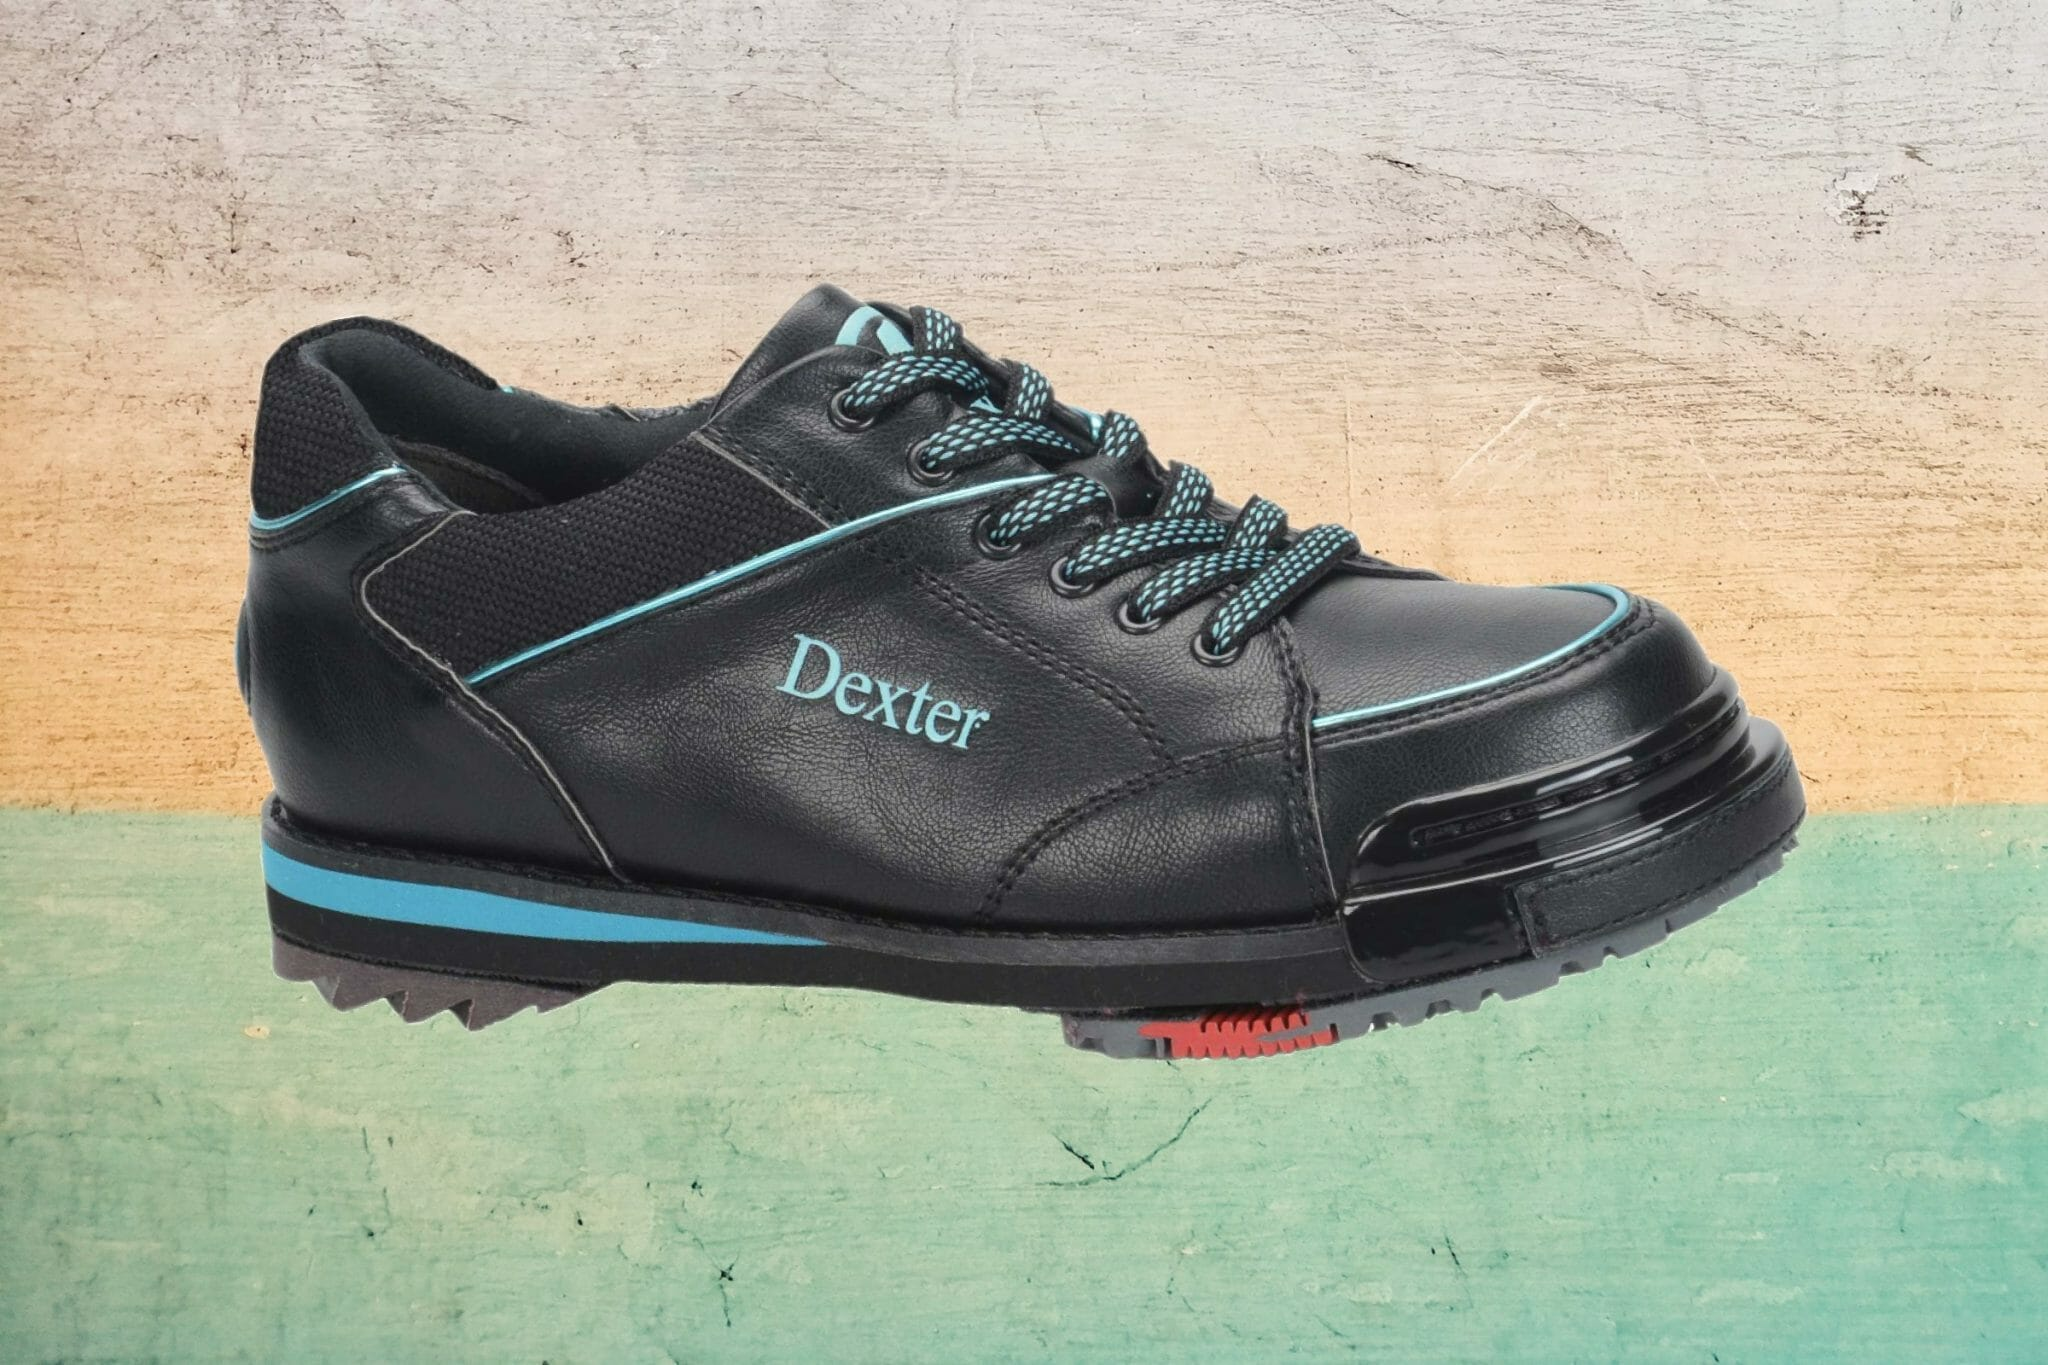 The SST 8 Bowling Shoe by Dexter for both Men and Women